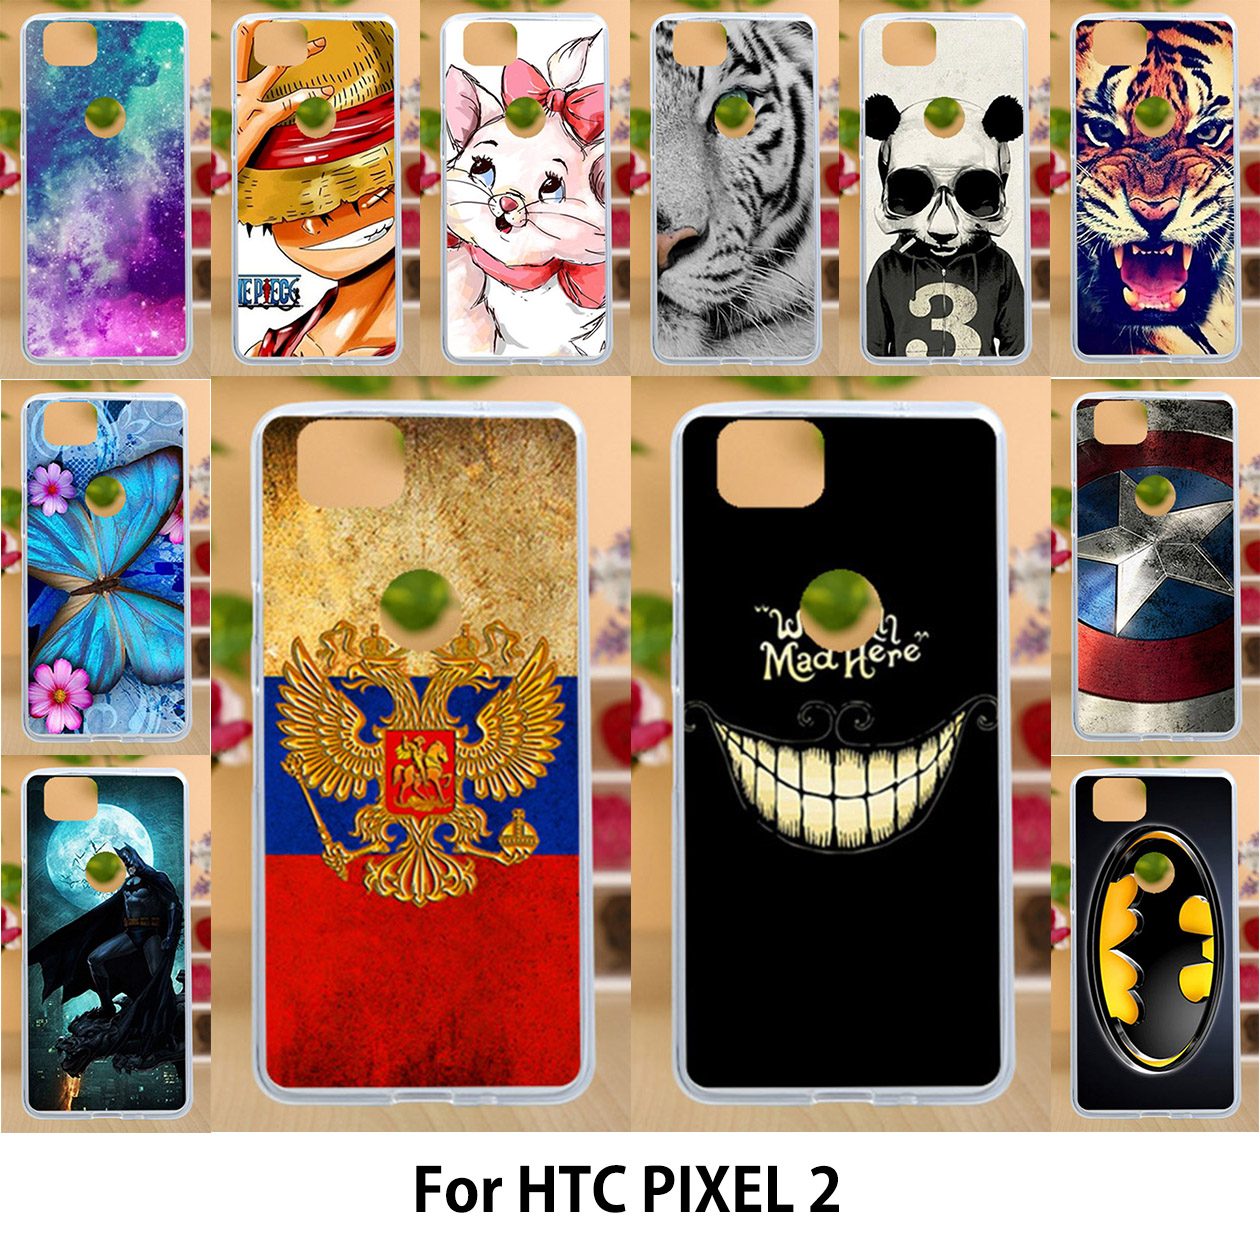 Case For HTC Pixel2 Google Pixel 2 5.0 Inch Cases Silicone TPU Soft Back Cover Painted Flags Smile Face Animals Housing